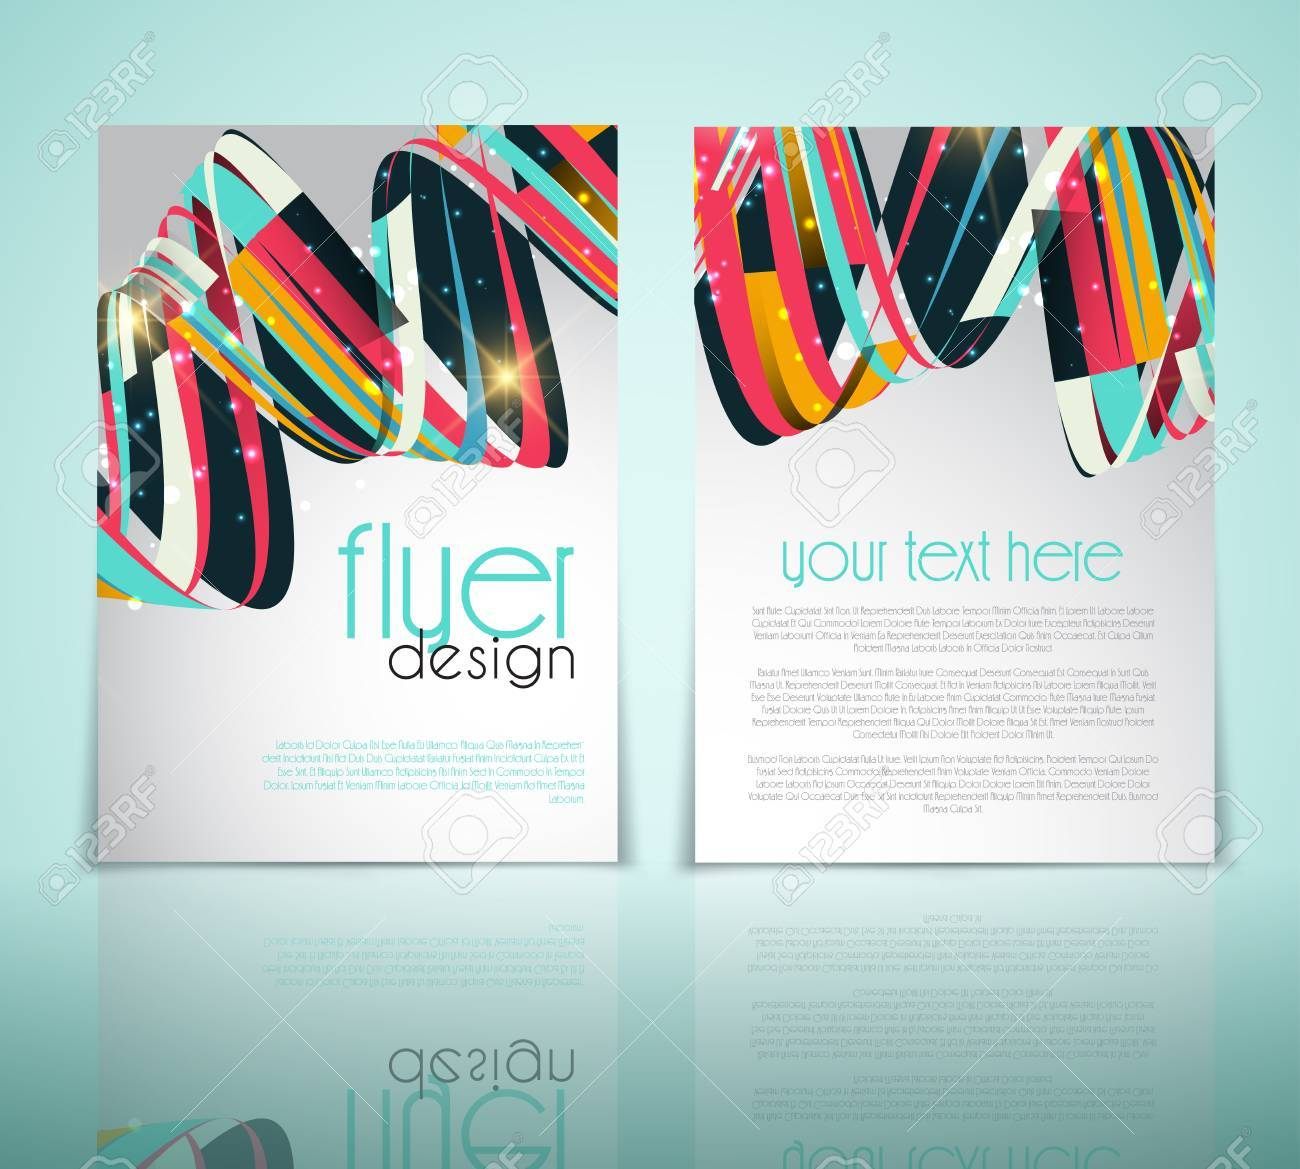 Double Sided Flyer Template With An Abstract Design Stock Photo ...